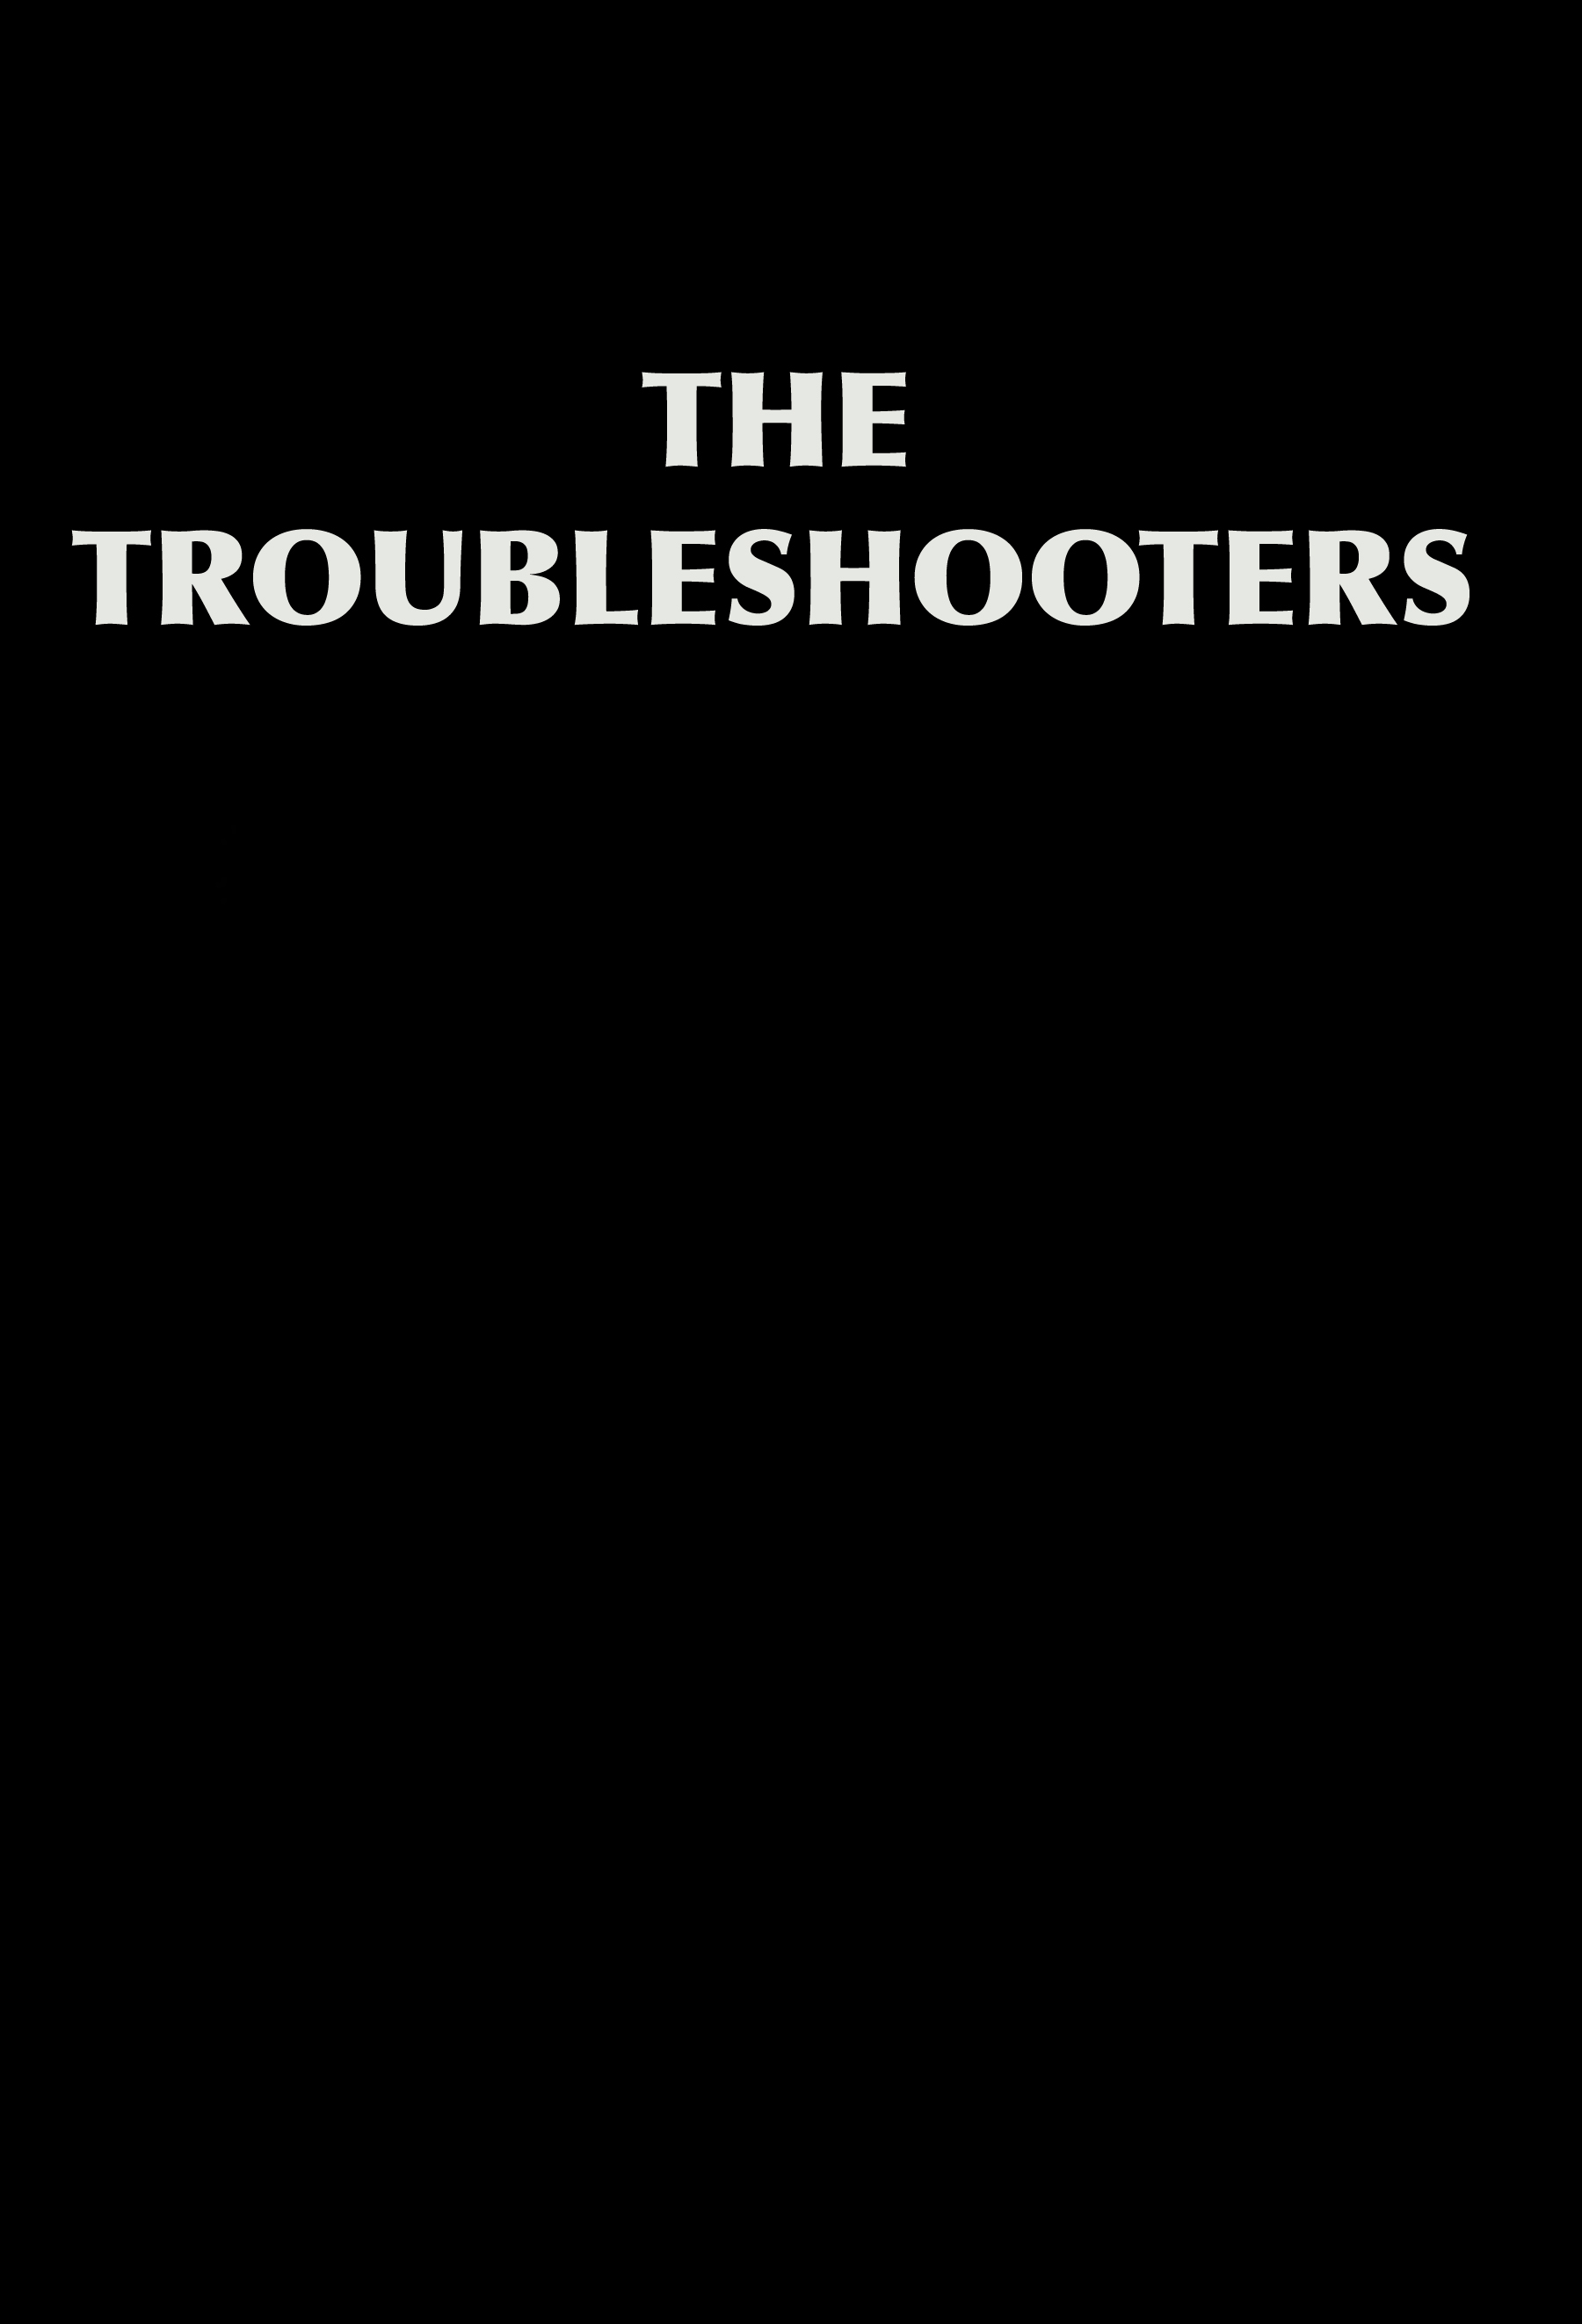 Troubleshooters (1959)